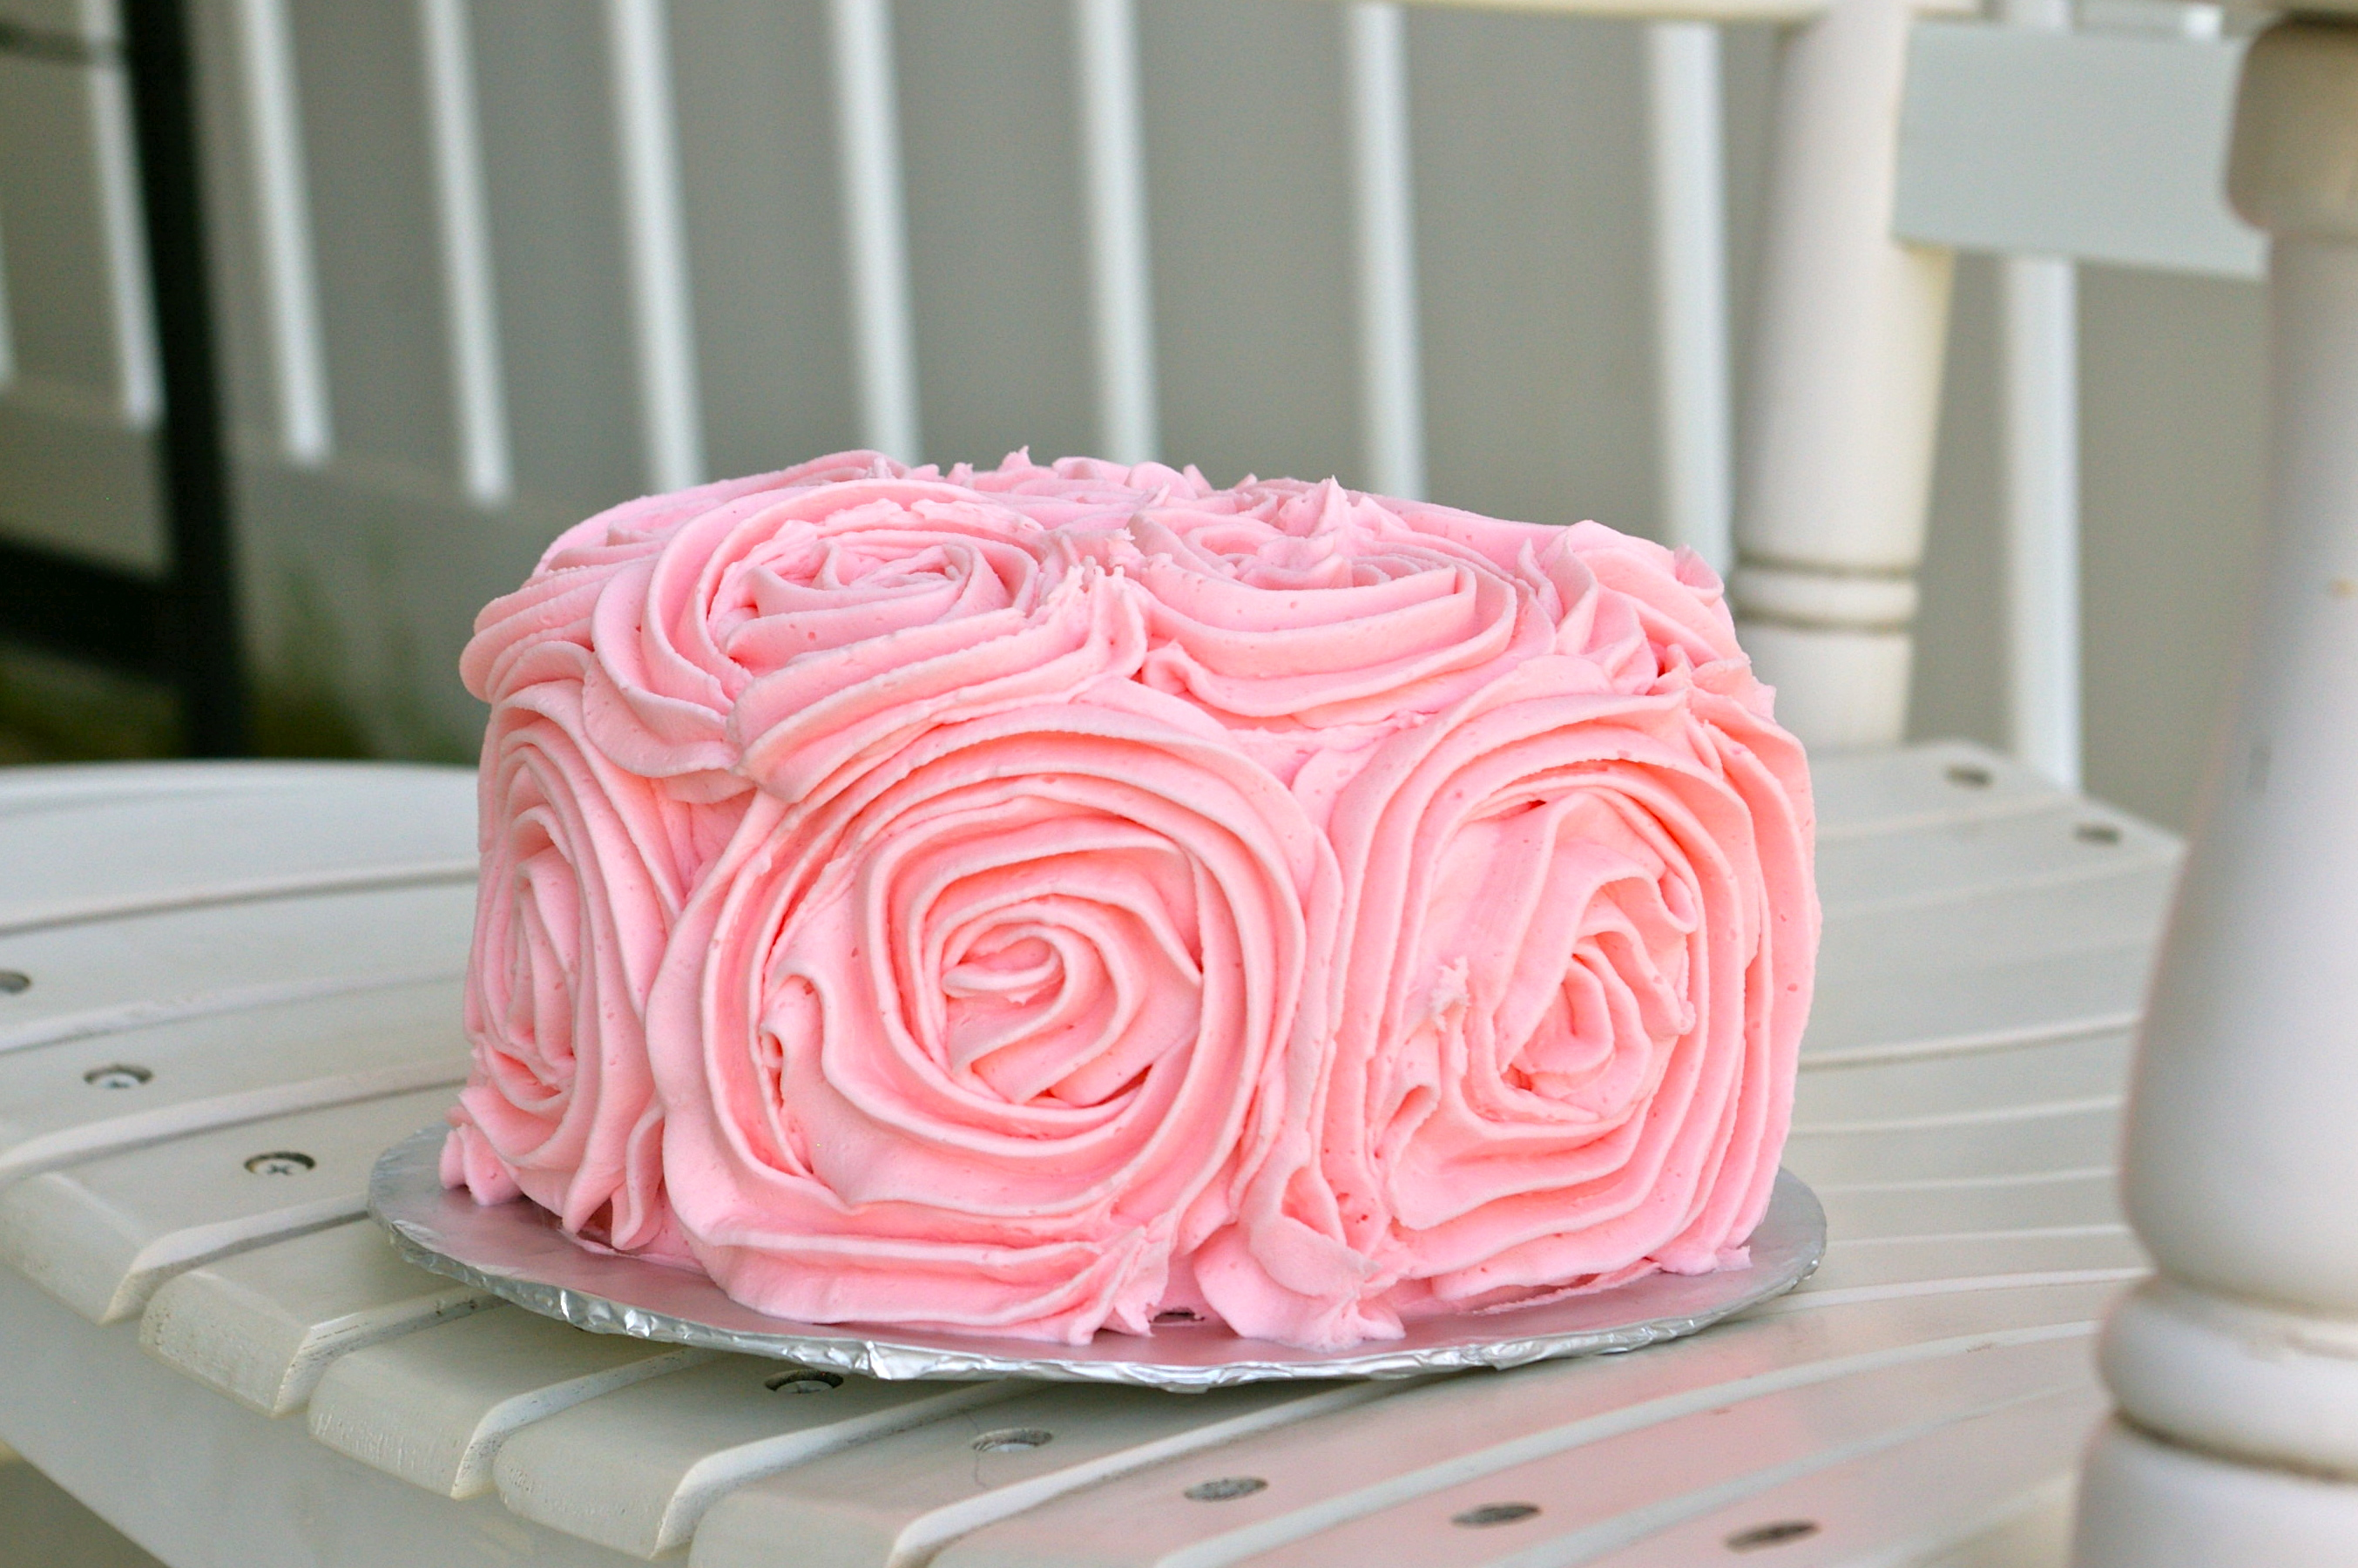 Cake Design Small : Rose Cake by small means